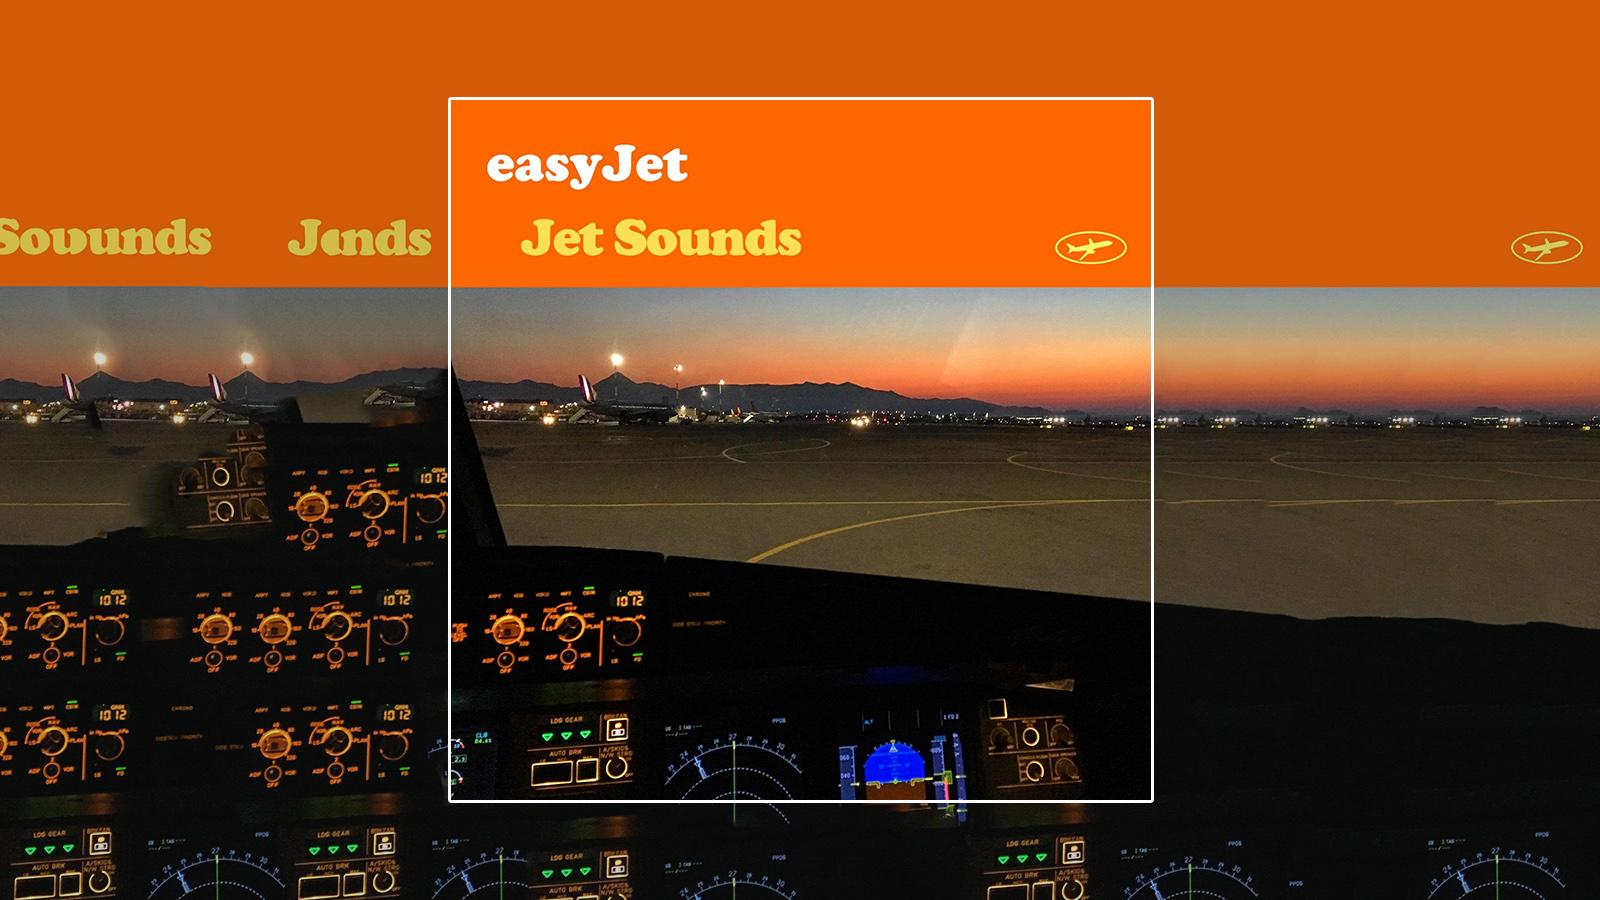 EasyJet Jet Sounds